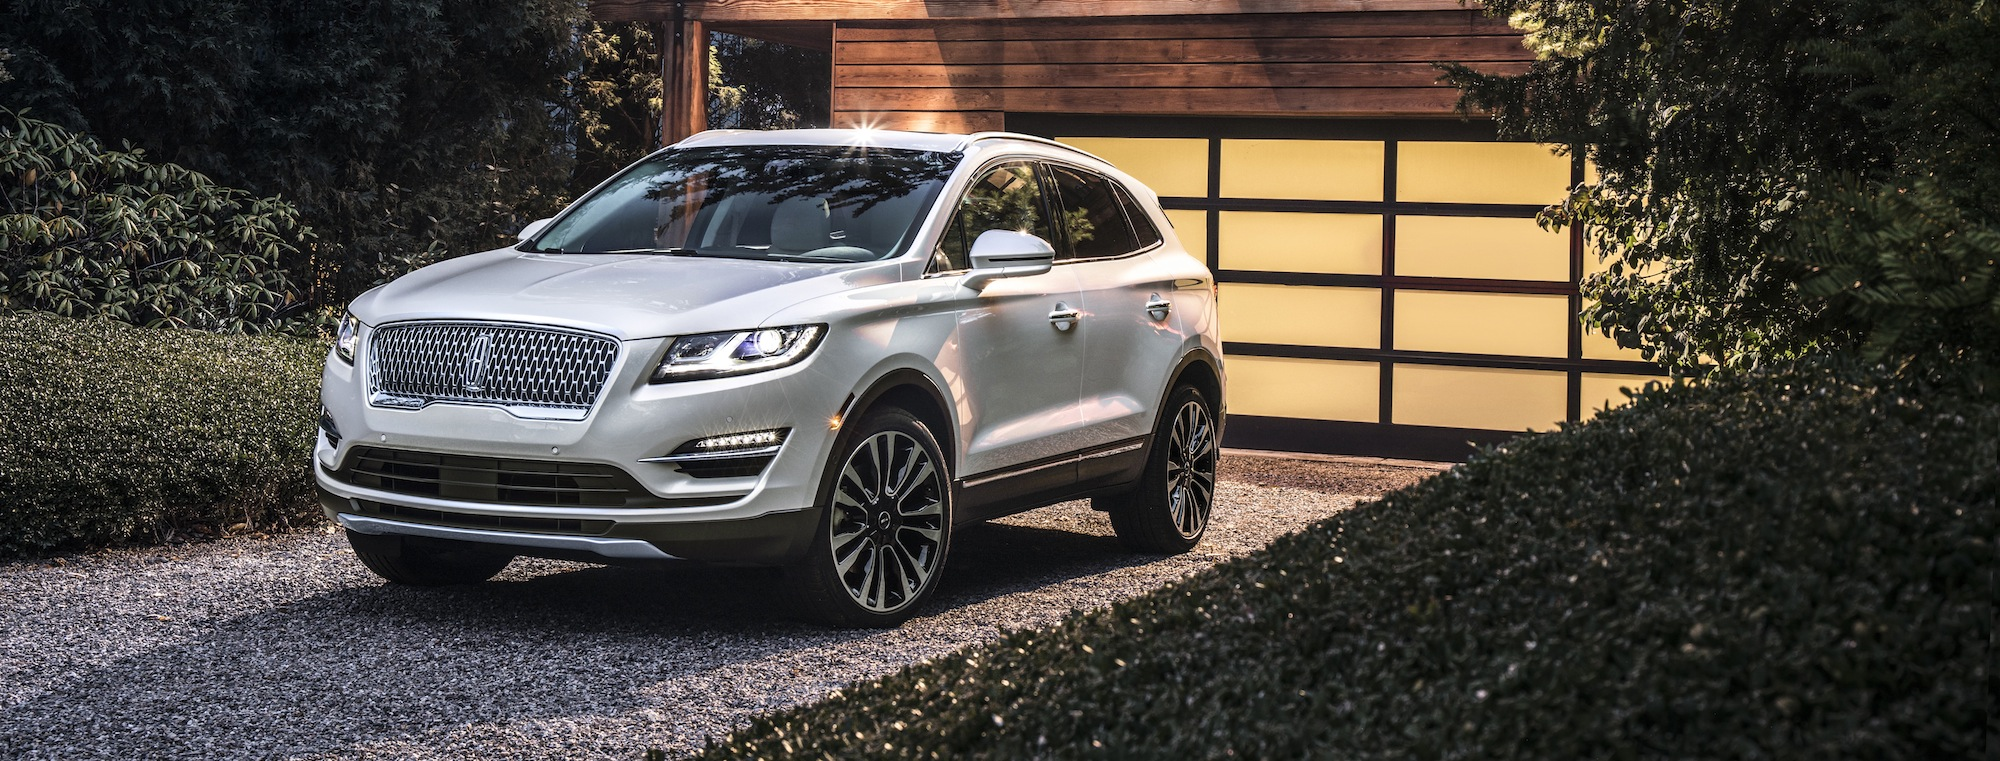 2019 Lincoln MKC: Compact Luxury SUV That Caters To All Your Desires